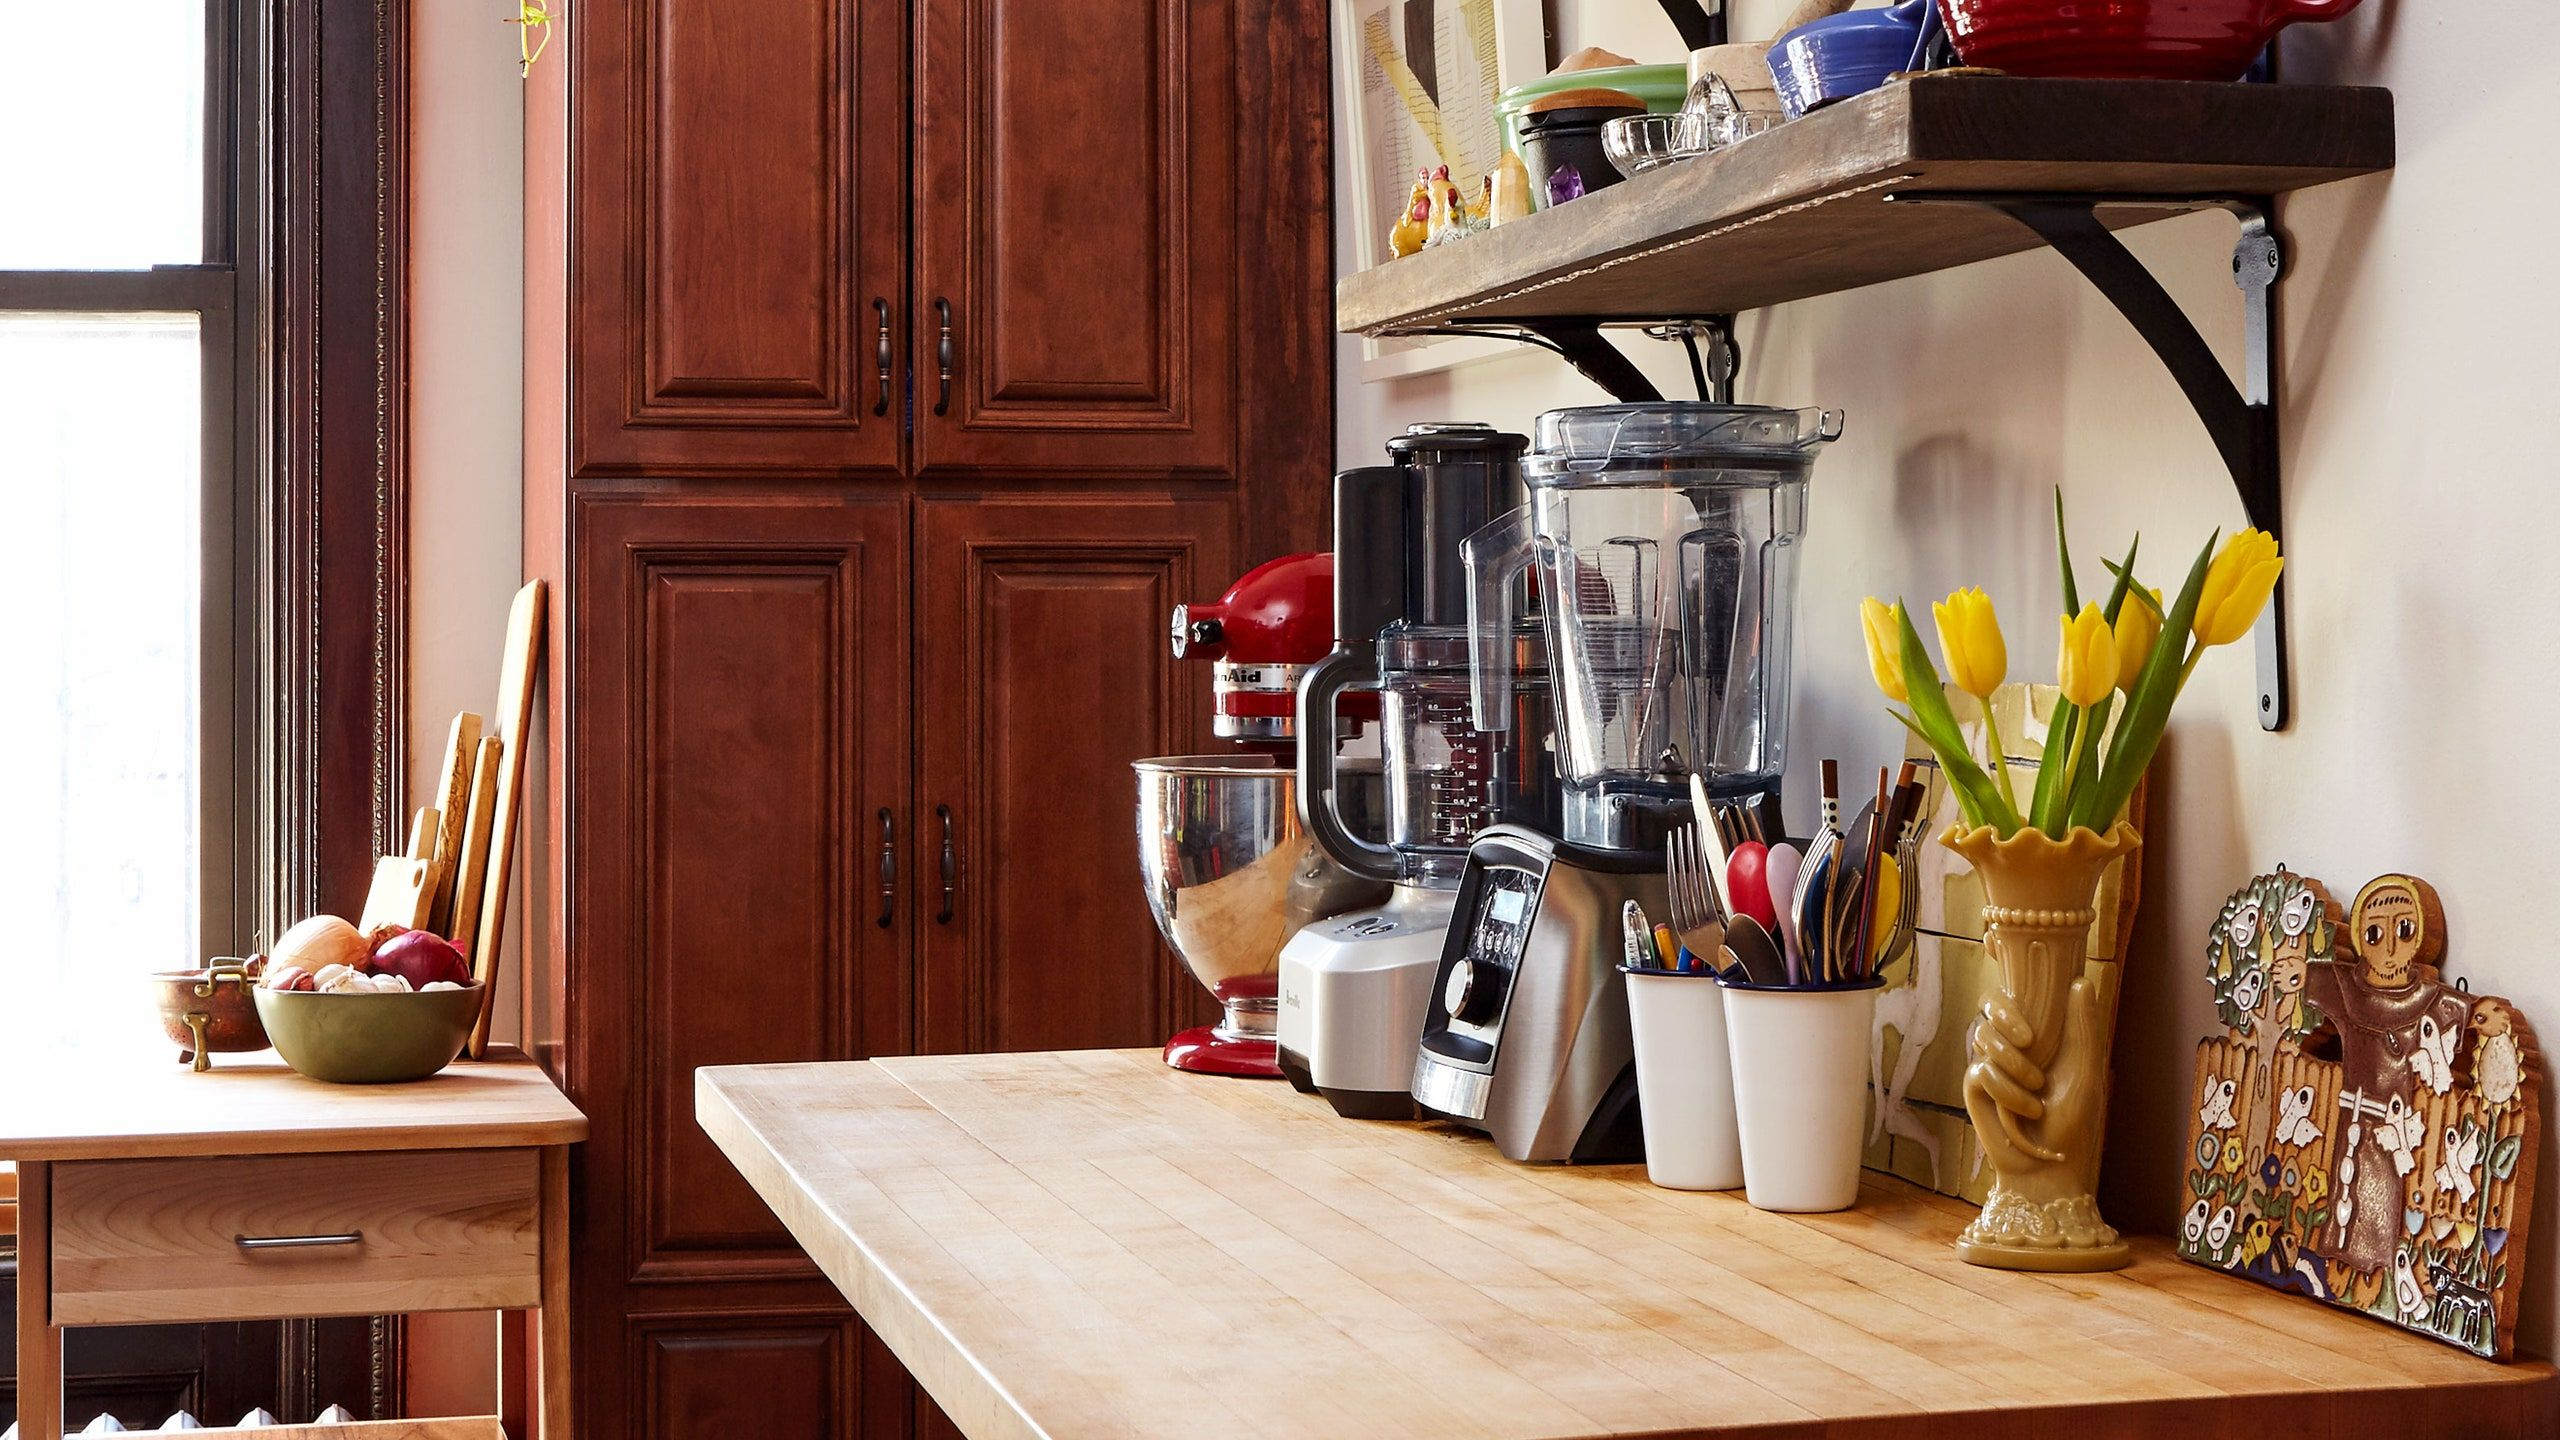 Countertop Cleaners For Every Surface